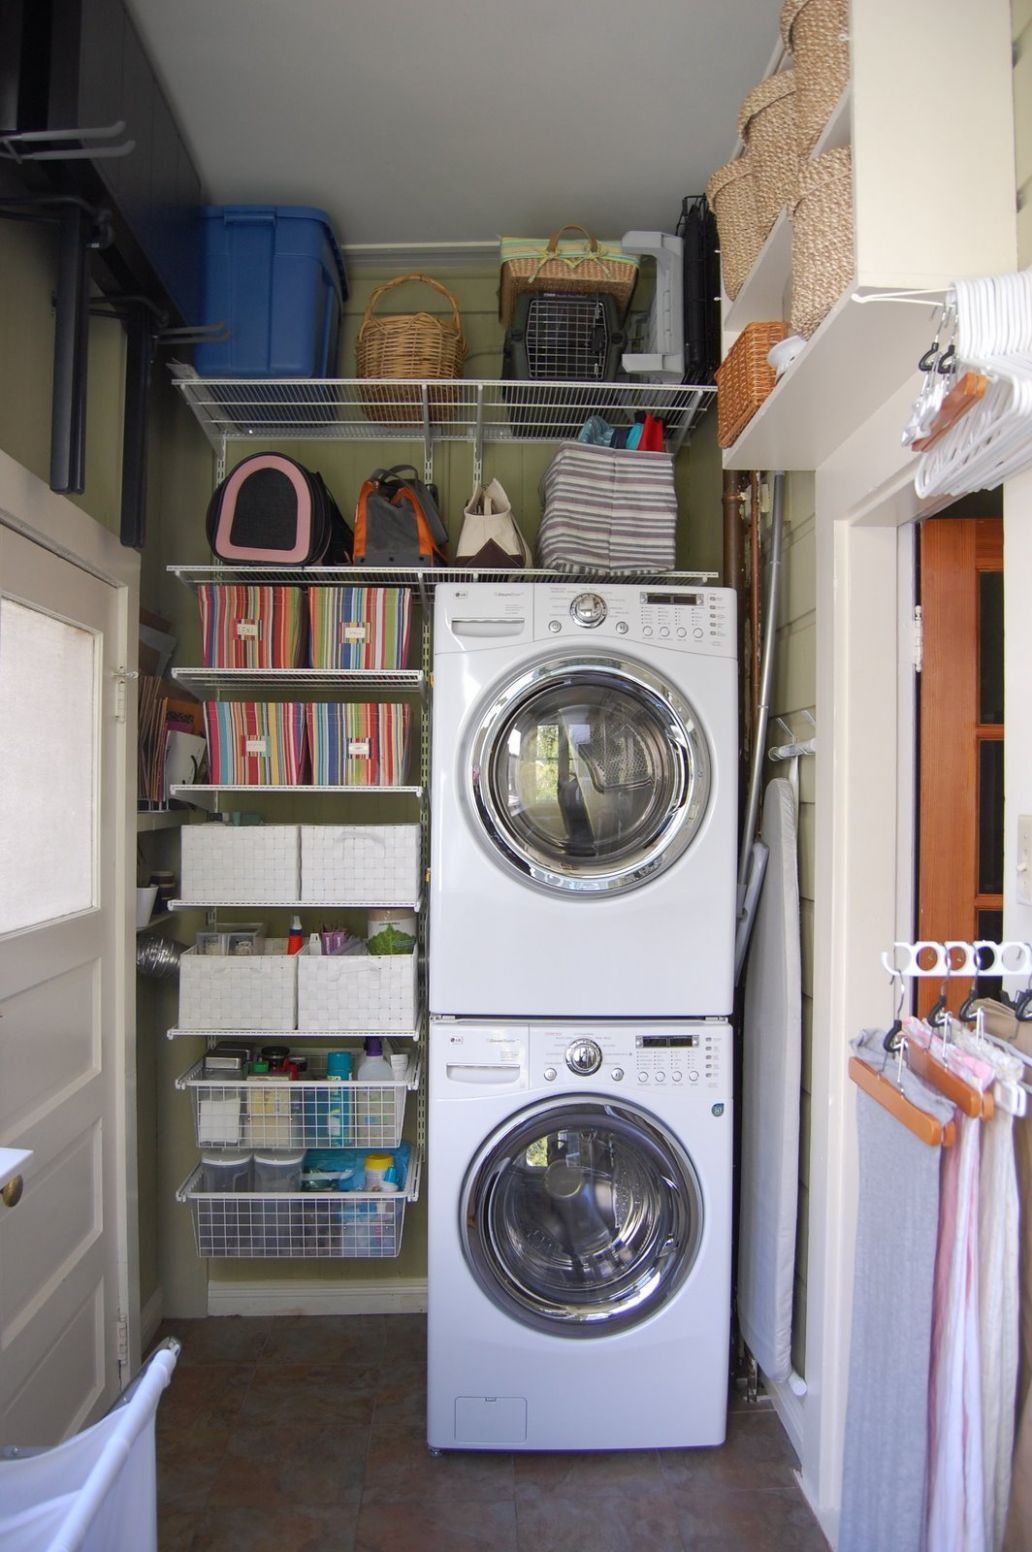 Laundry Room Ideas Stacked Washer Dryer - twoj doktor - laundry room ideas stackable washer and dryer